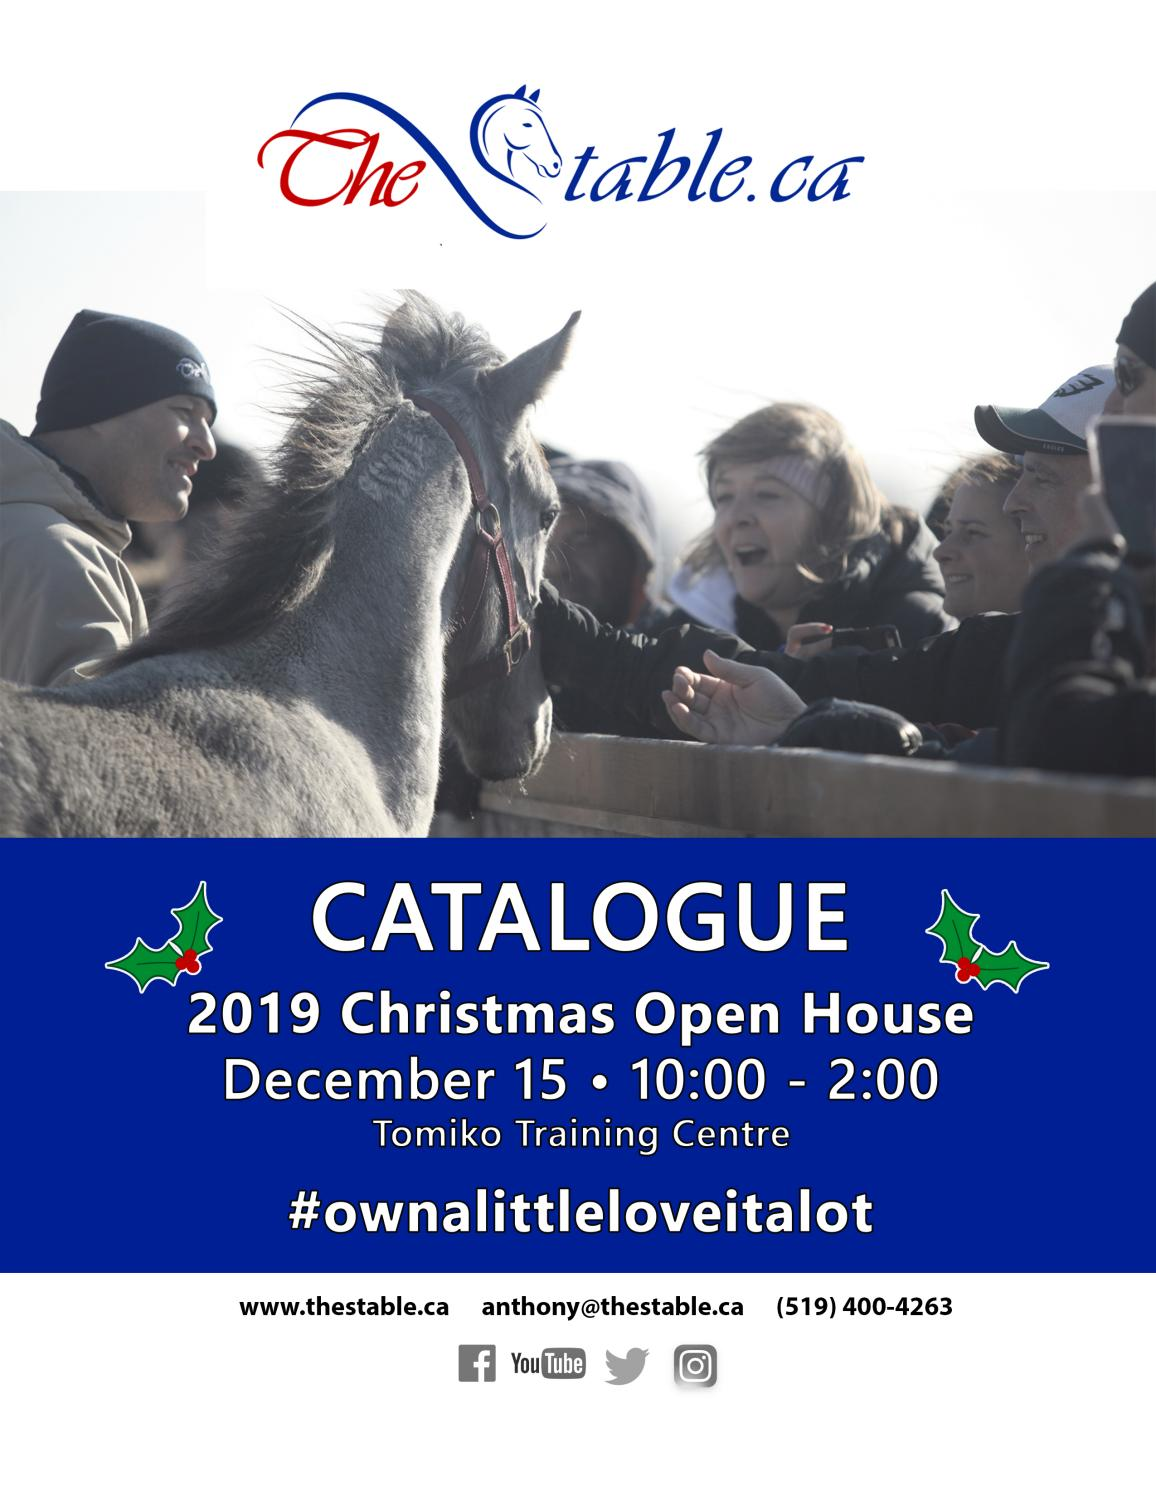 Catalogue Thestable Ca Christmas Open House 2019 By Thestable Ca